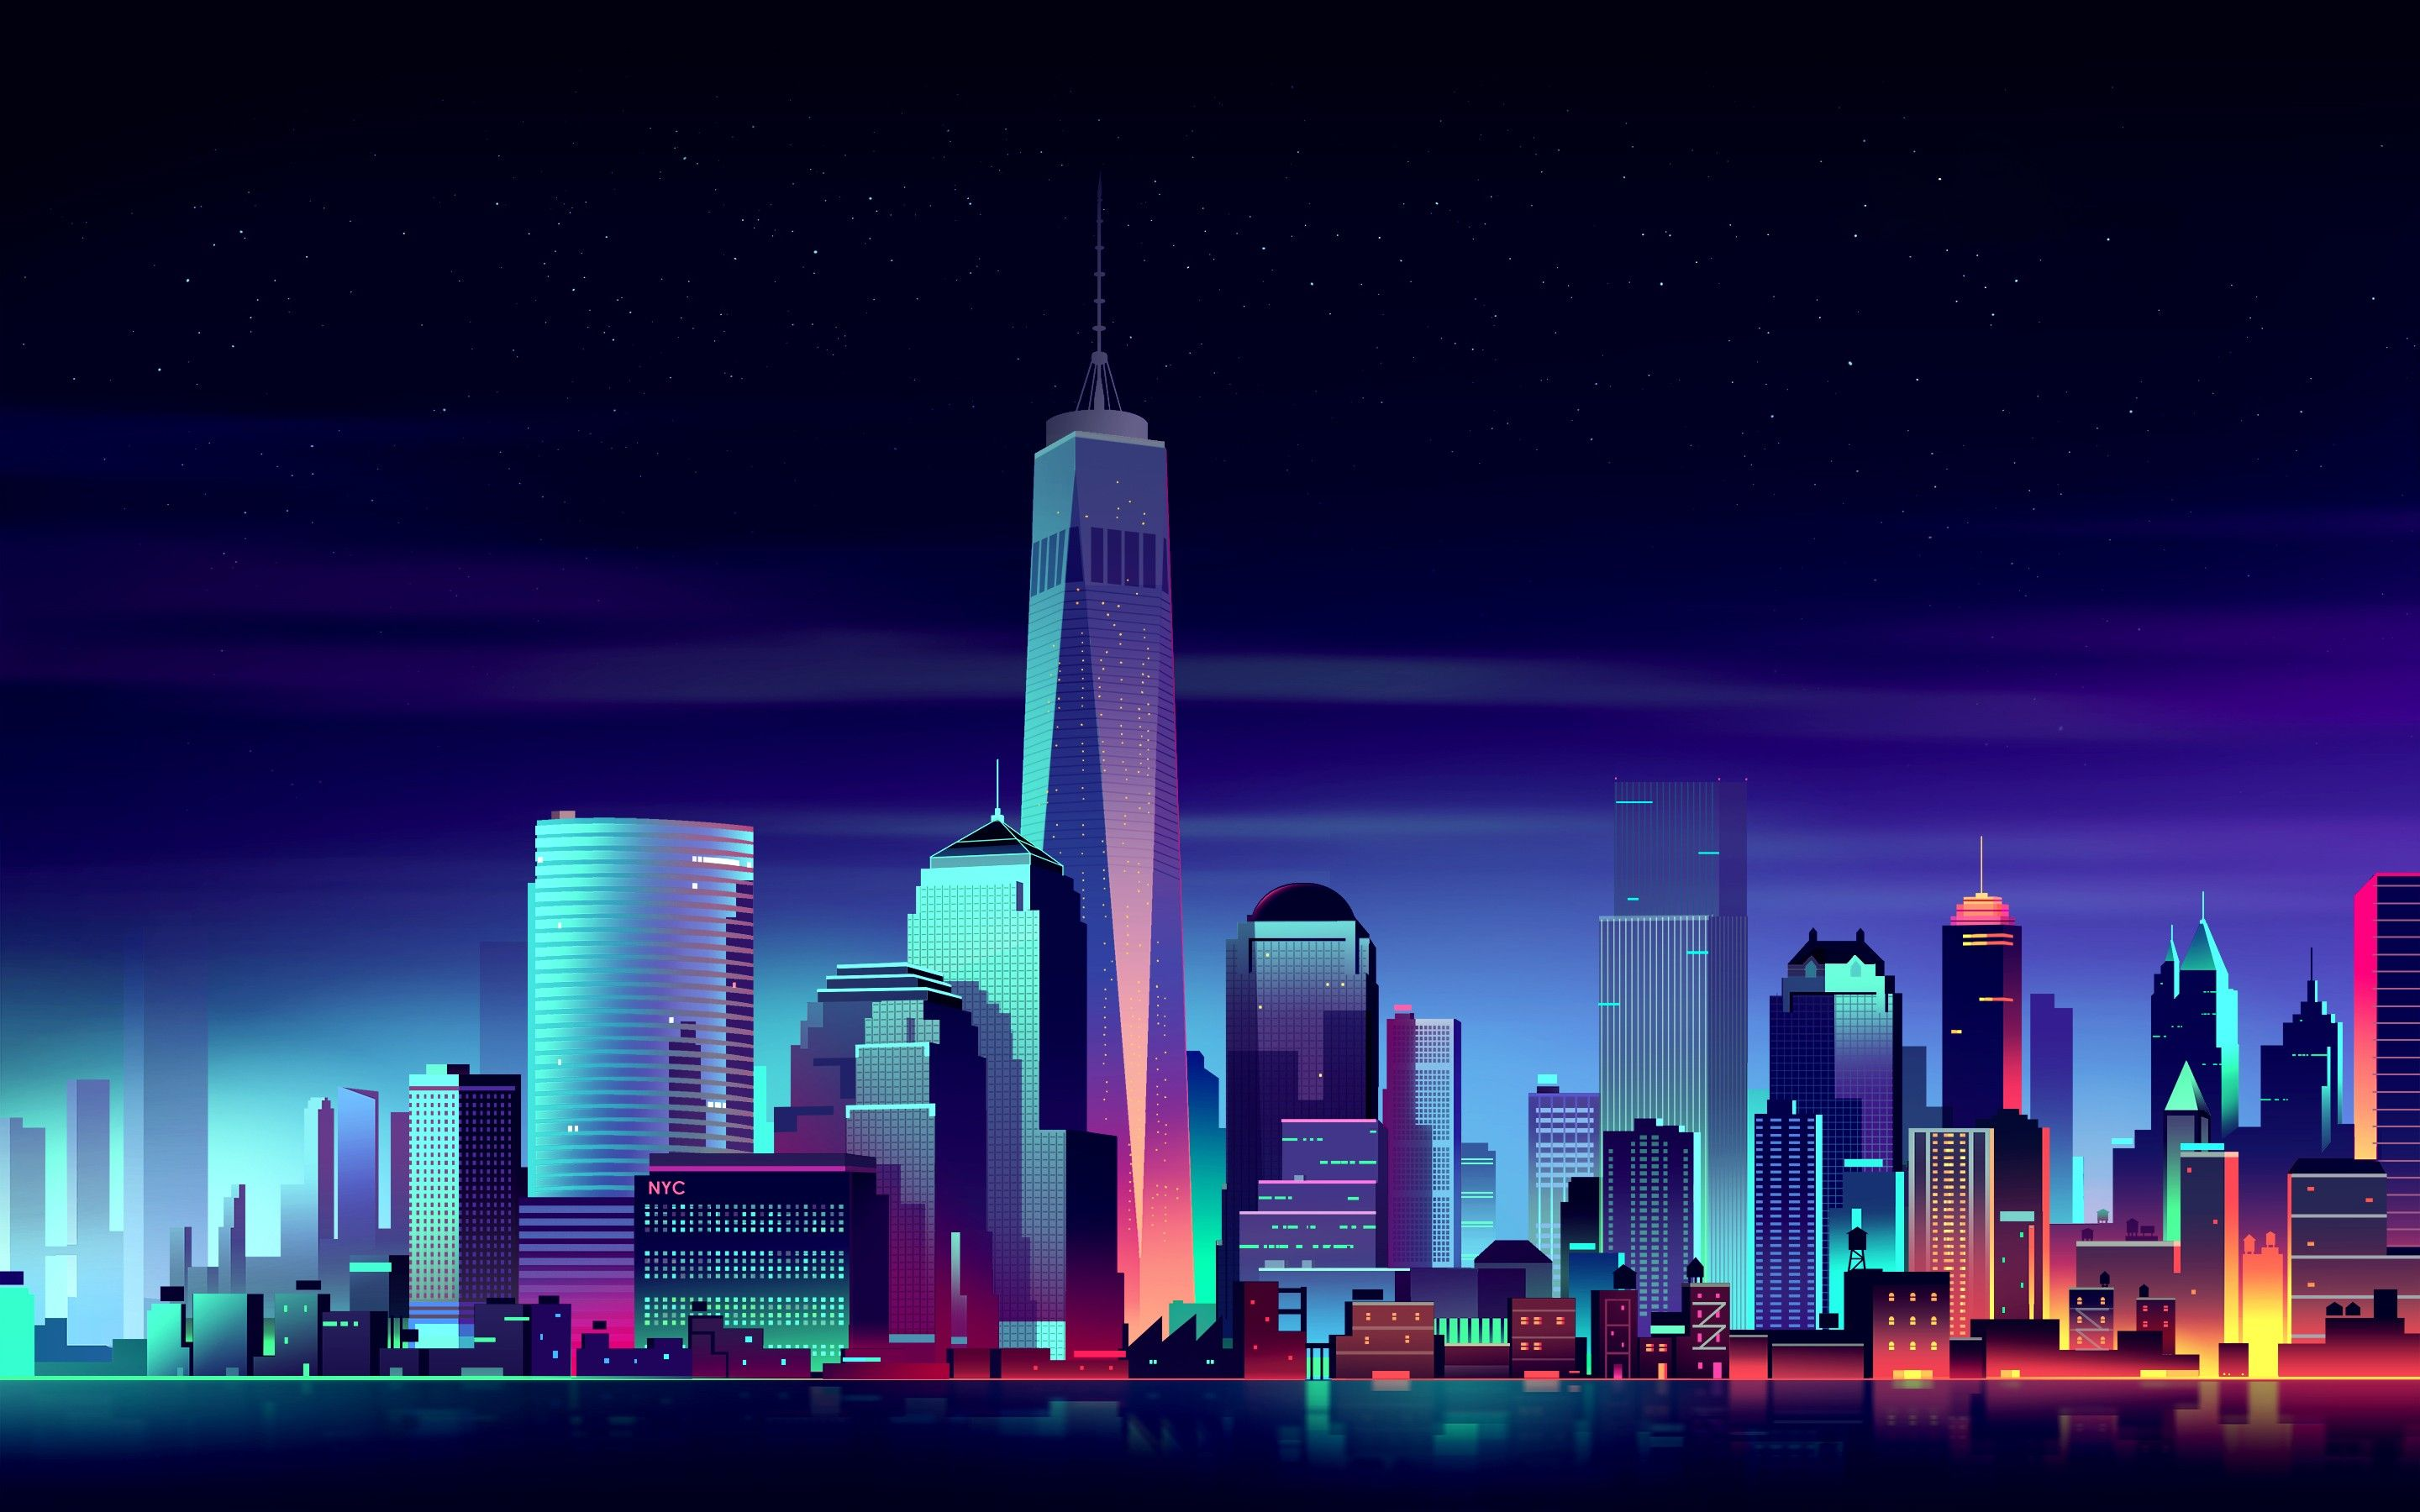 Download Hd Wallpapers Of 273761 Night Cityscape Colorful New York City Free Download High Quality And Building Illustration City Wallpaper City Buildings